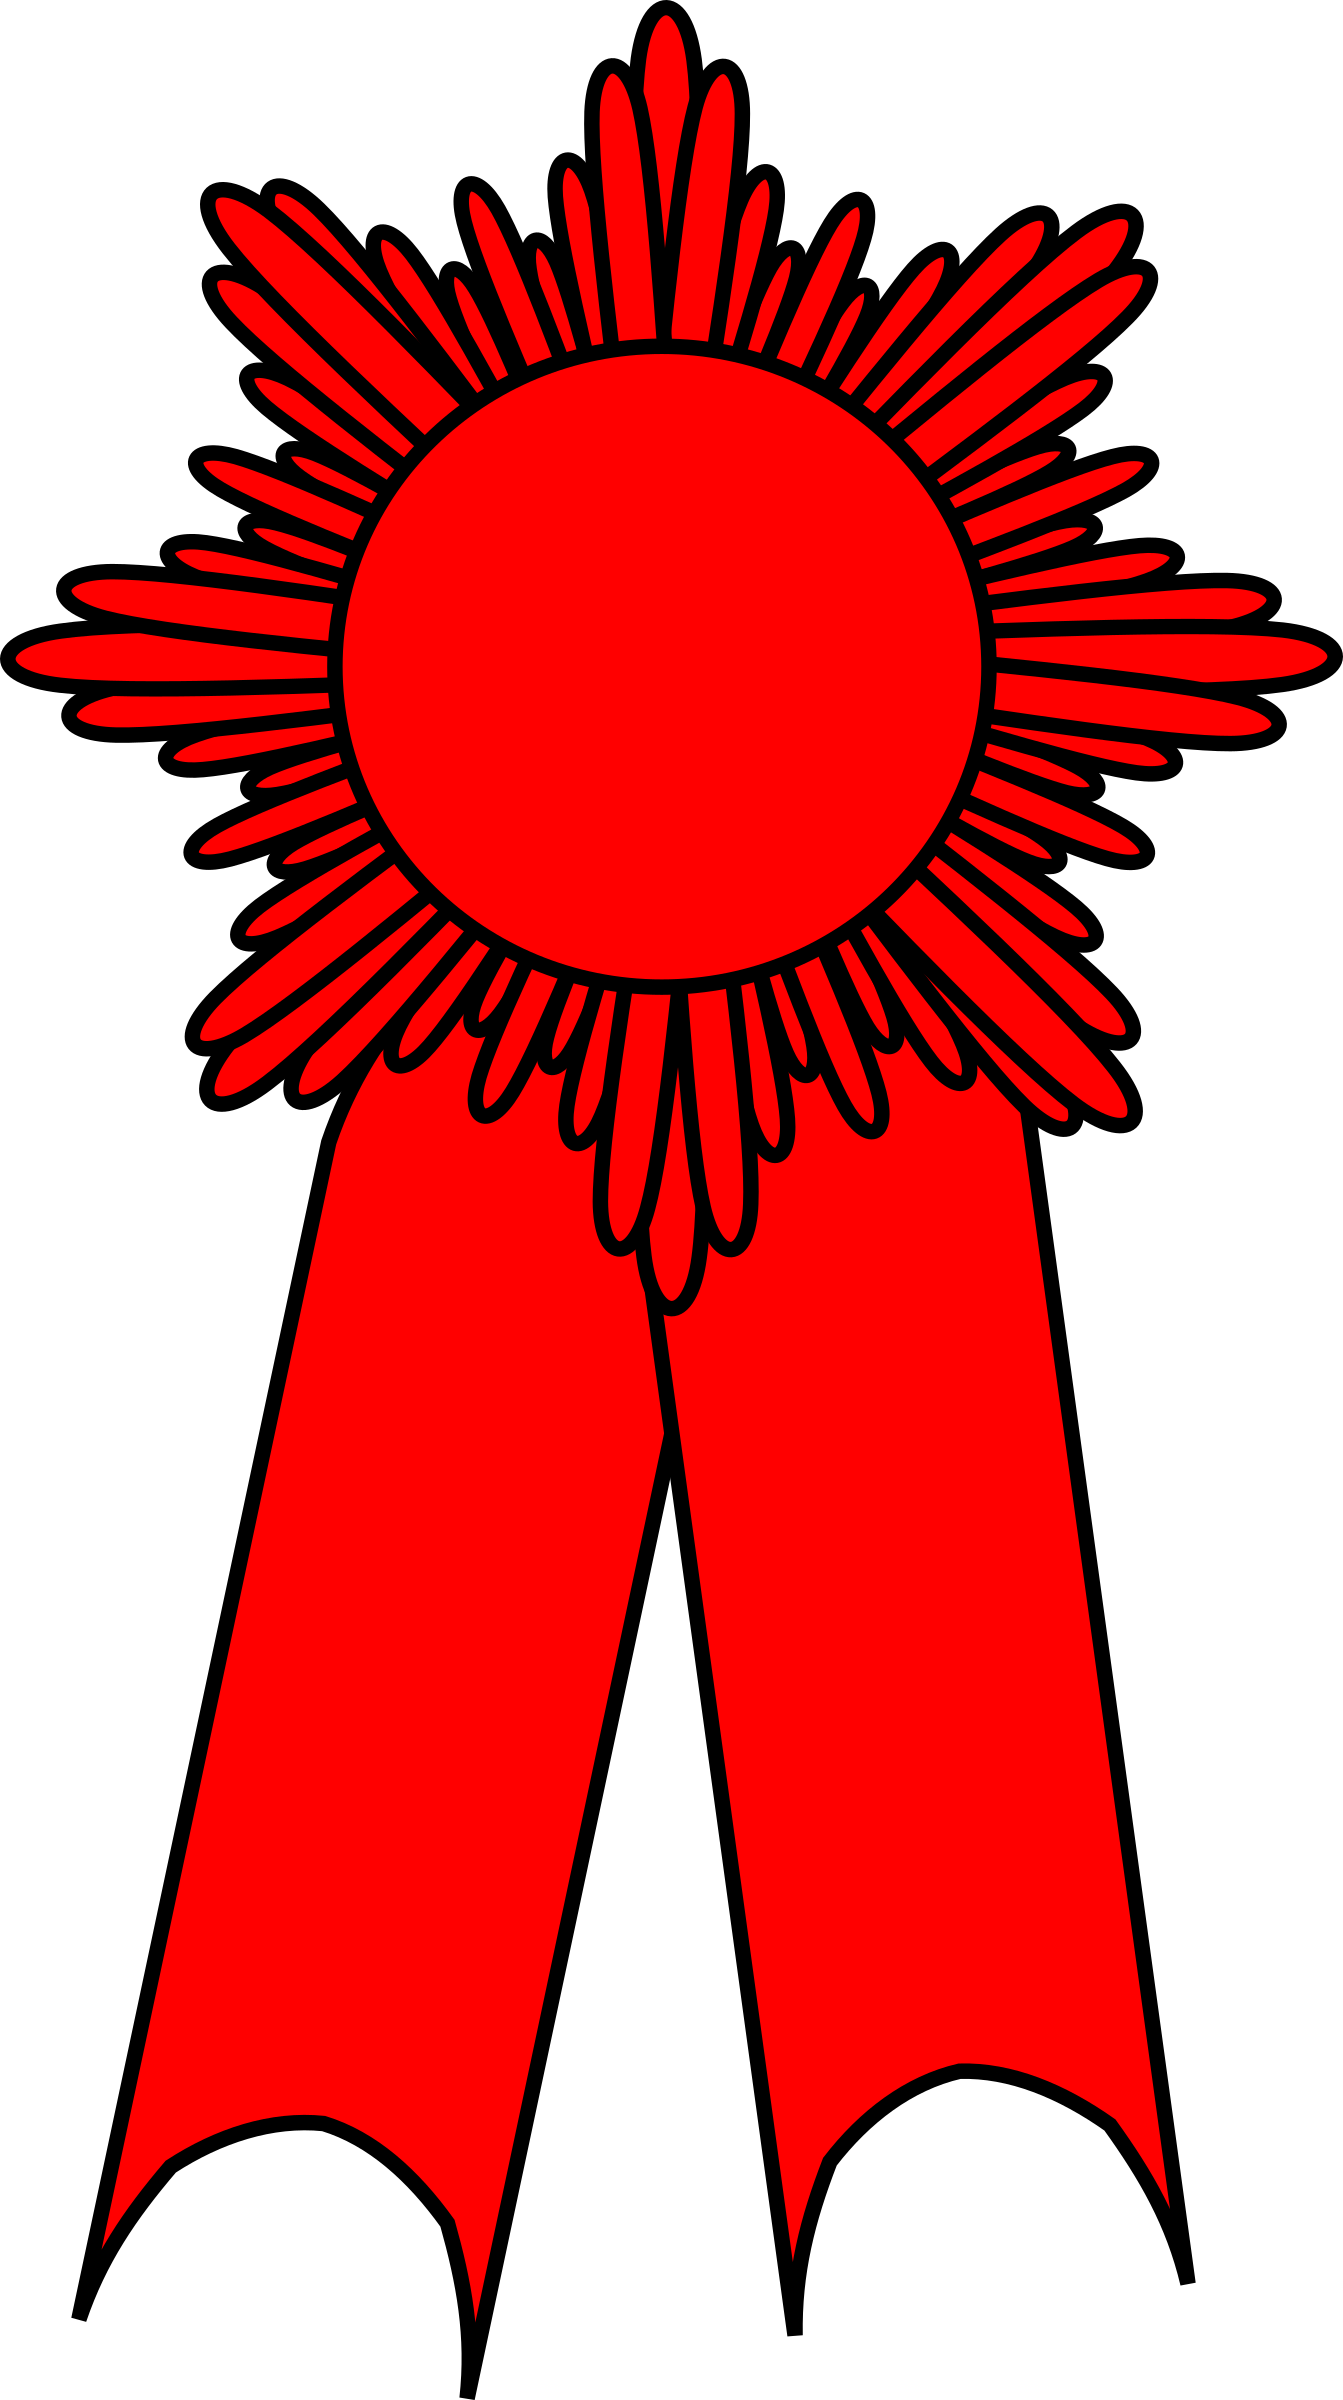 vector library download Prize clipart. Ribbon red big image.